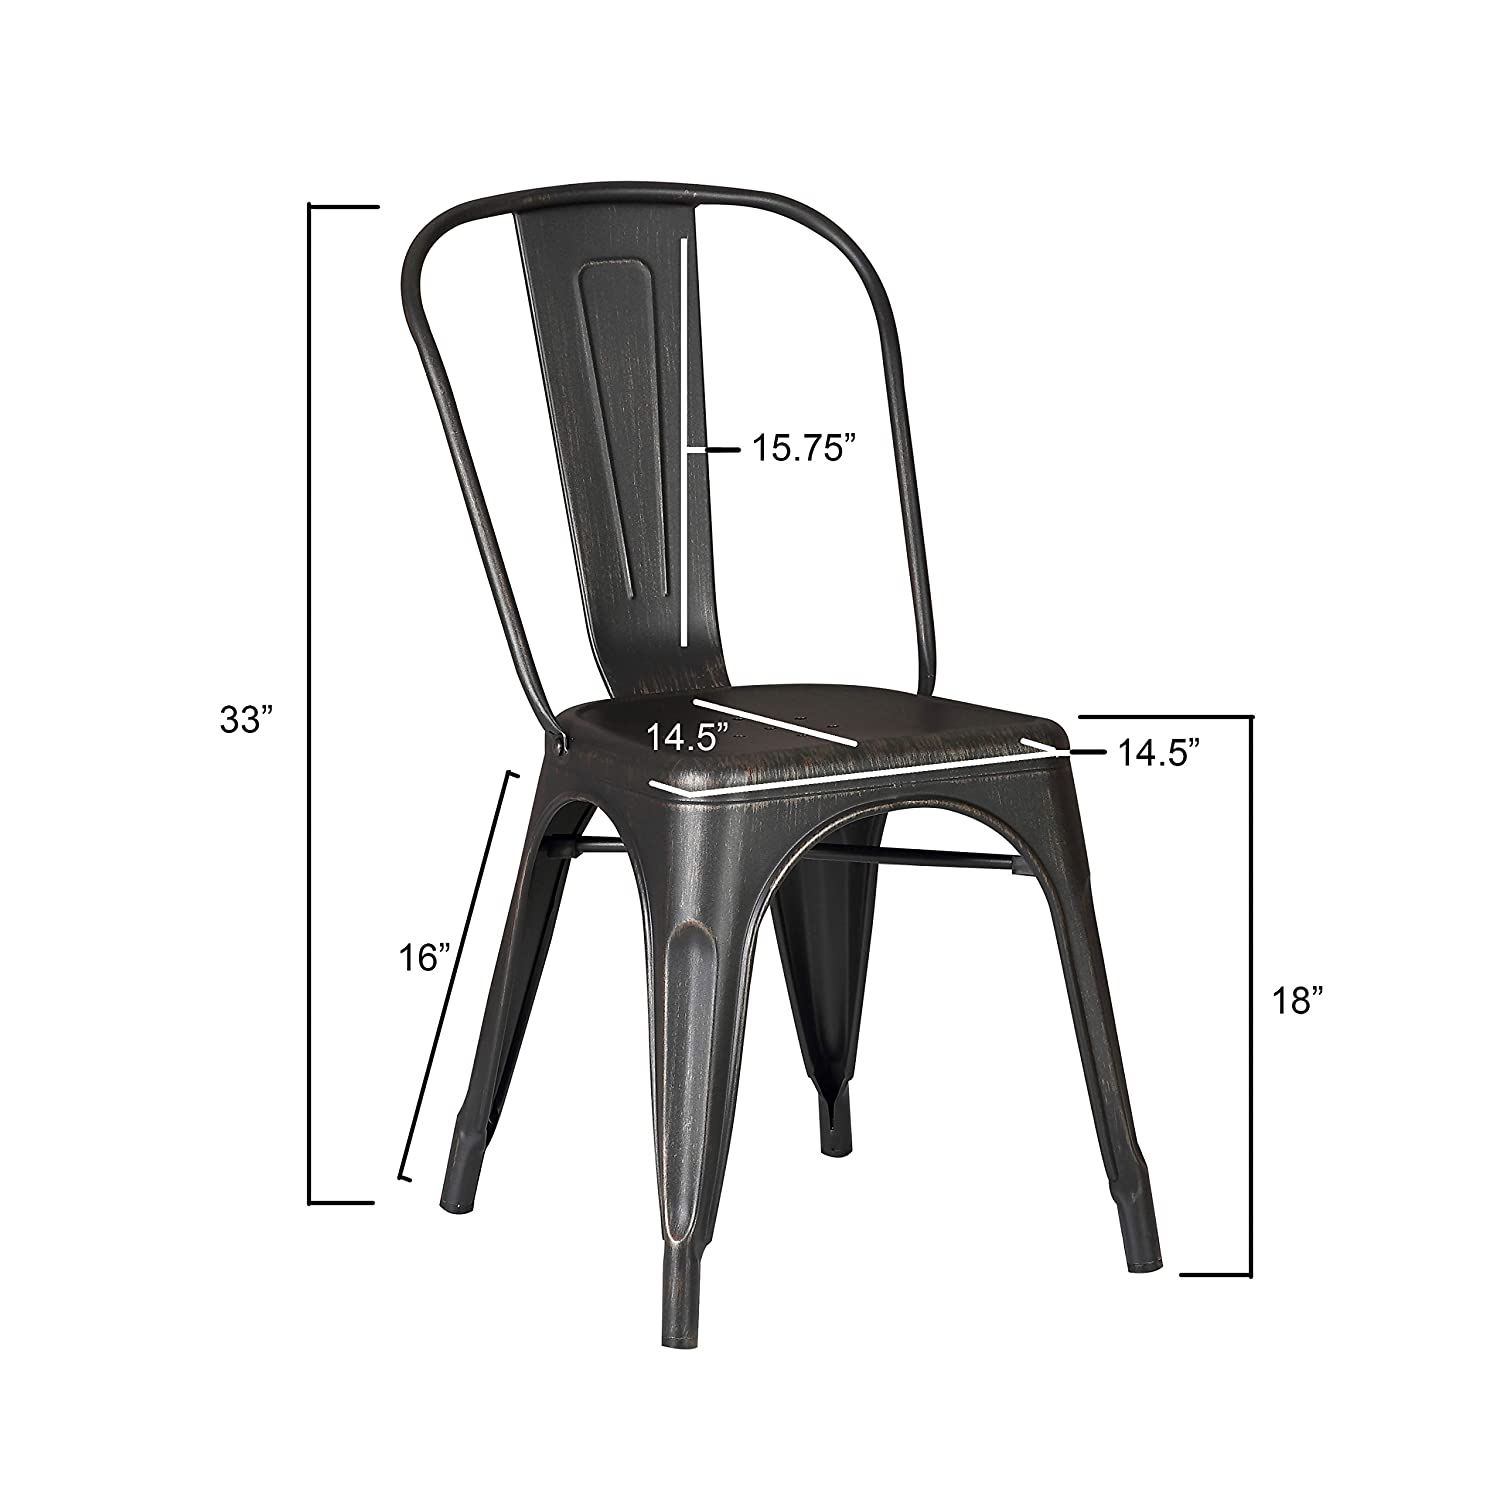 Amazon com ac pacific cole collection modern style metal dining room kitchen bar chairs set of 2 distressed black kitchen dining